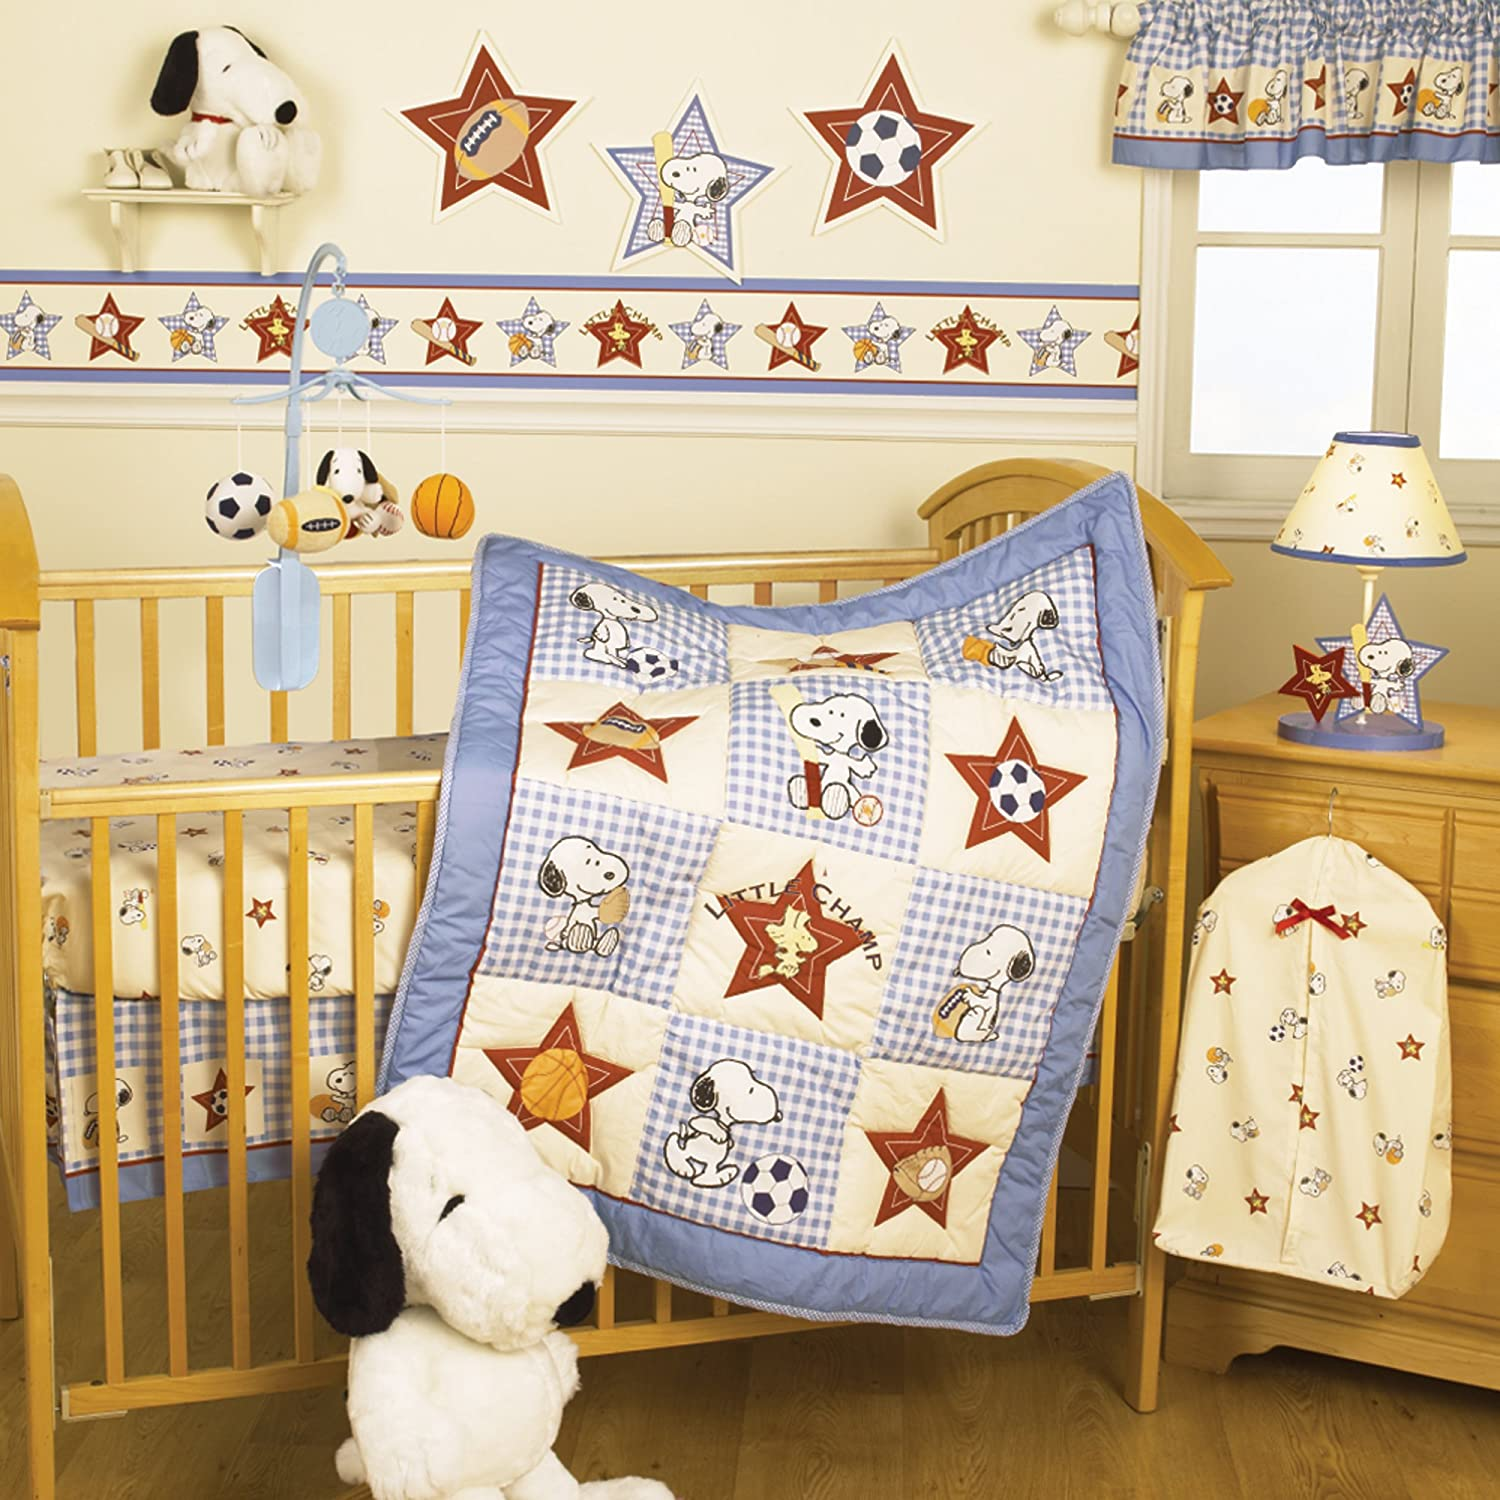 amazing Baby Boy Crib Bedding Sports Theme Part - 8: Amazon.com : Bedtime Originals Champ Snoopy 3 Piece Crib Bedding Set  (Discontinued by Manufacturer) : Baby